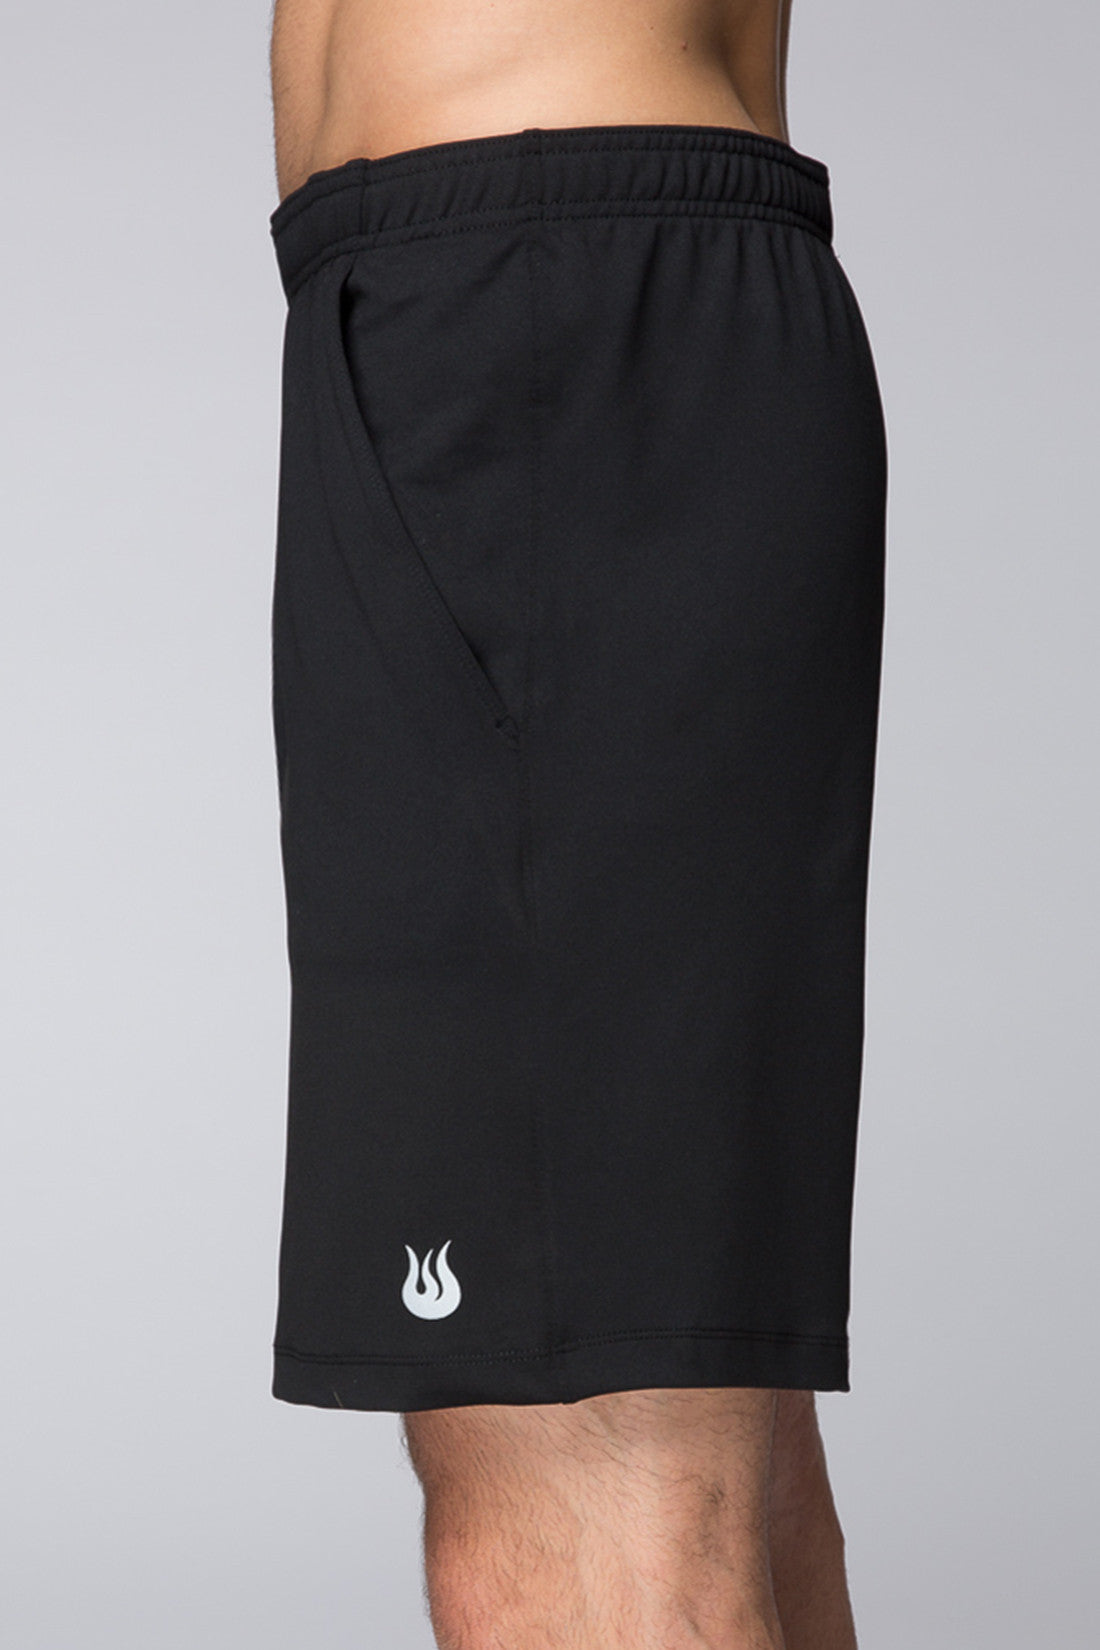 Tennis, Outdoor, Sweat wicking, sturdy, fits perfectly, Light, deep pockets, Legacy Knit short - Jet Black